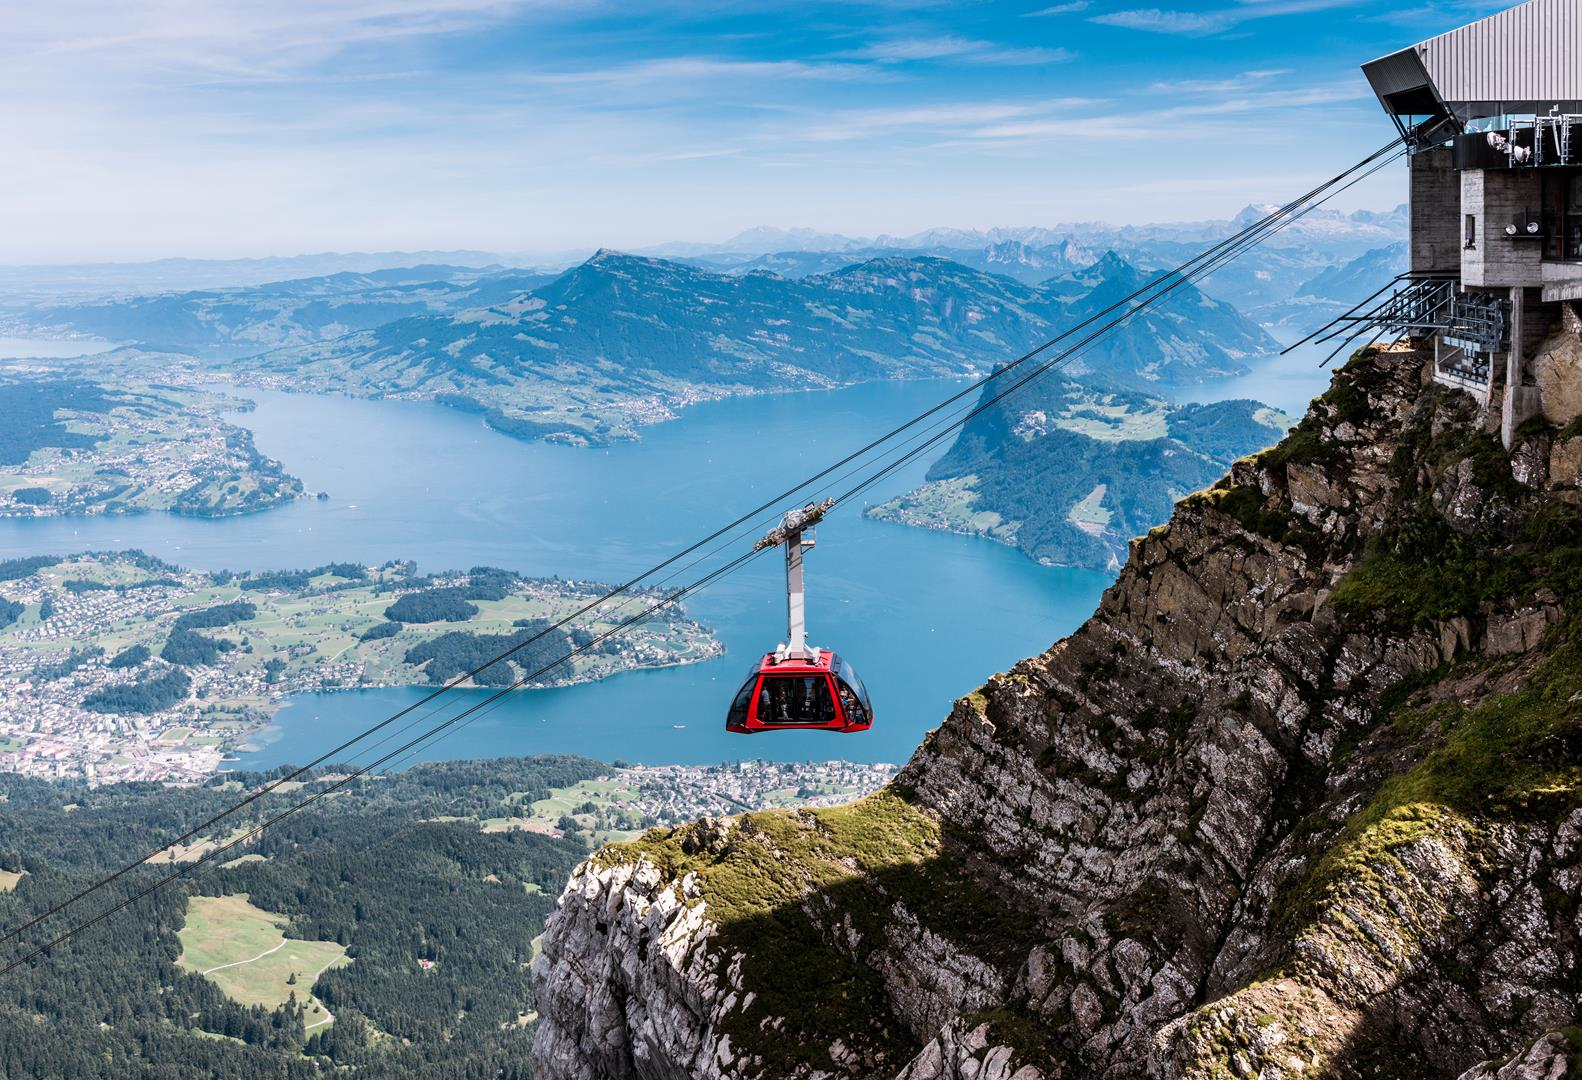 Mt. Pilatus and Lake Lucerne